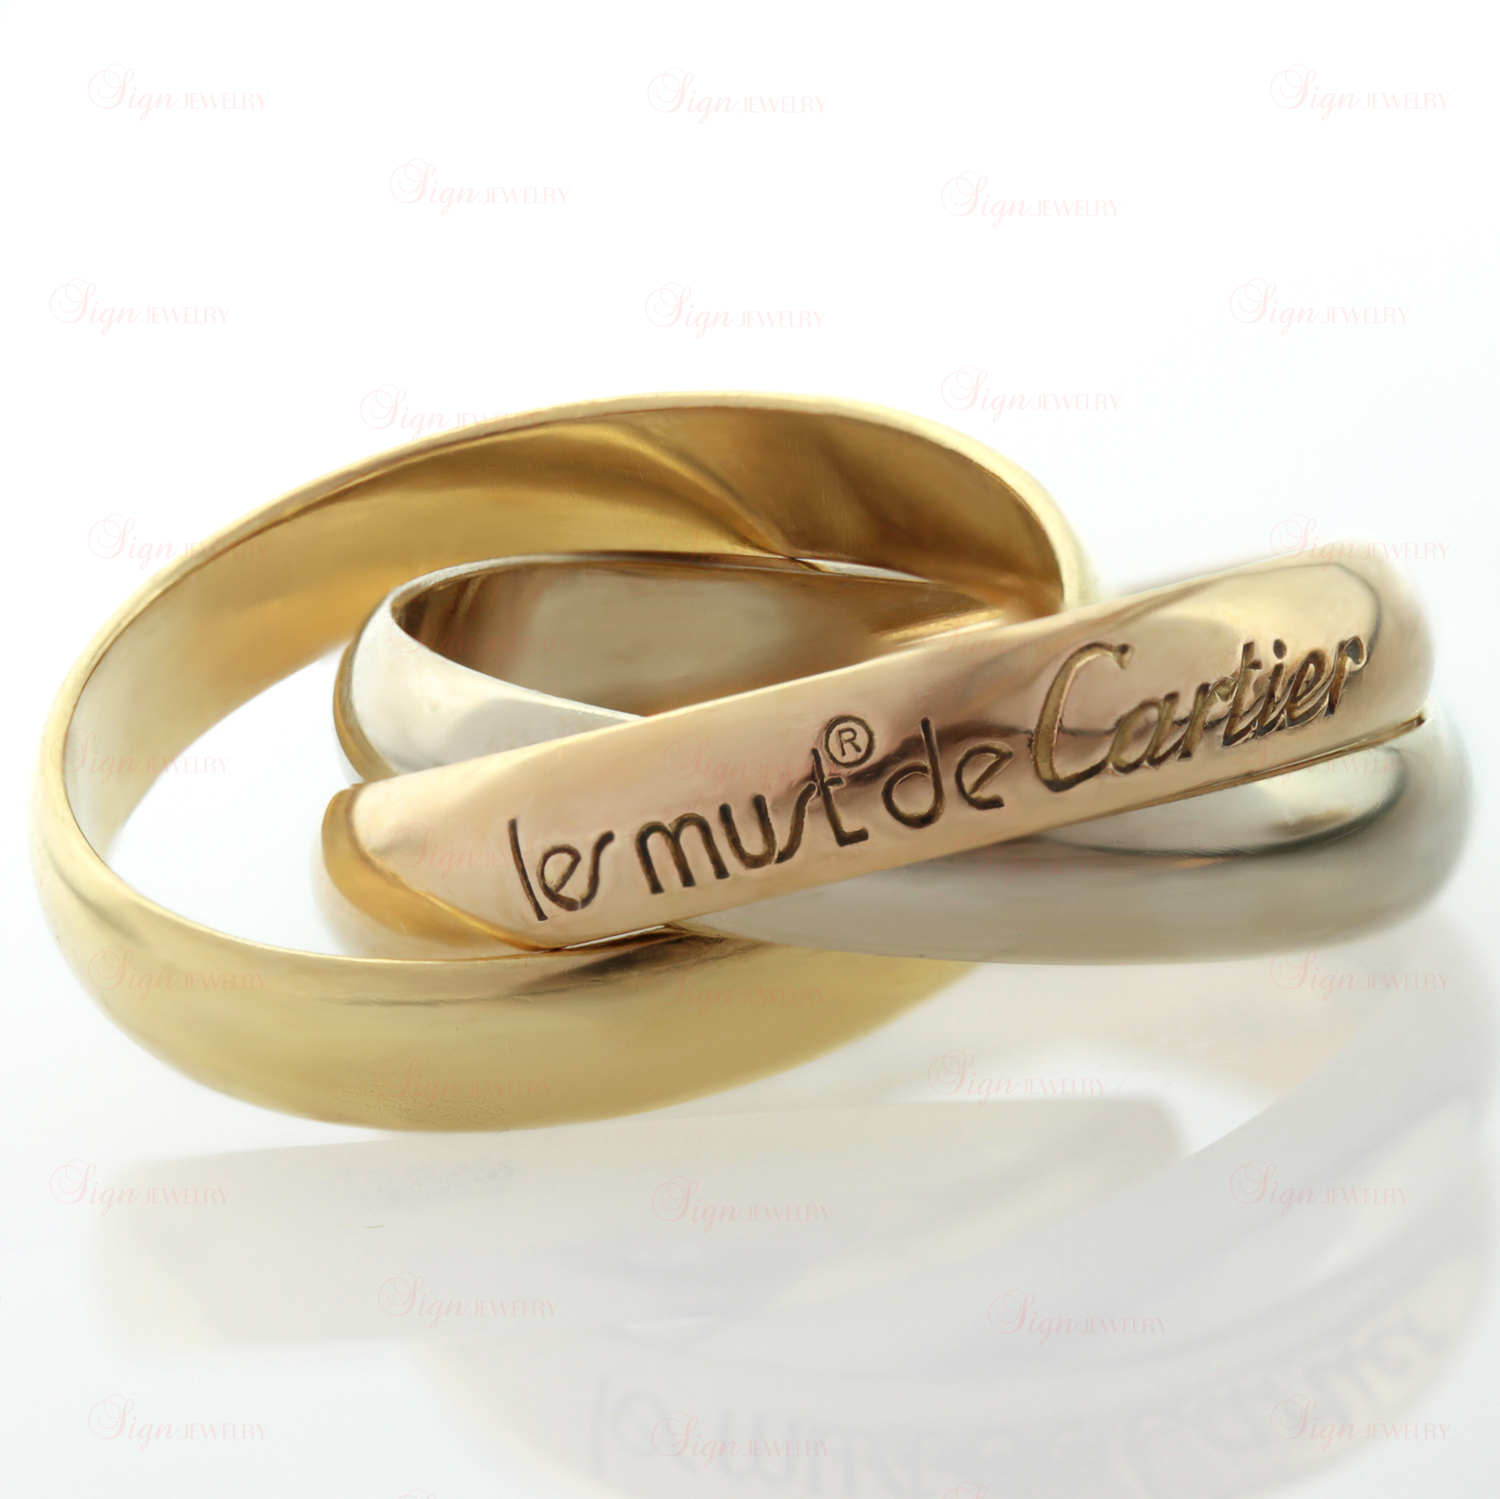 CARTIER Le Must De Trinity 18k Tri-Gold Band